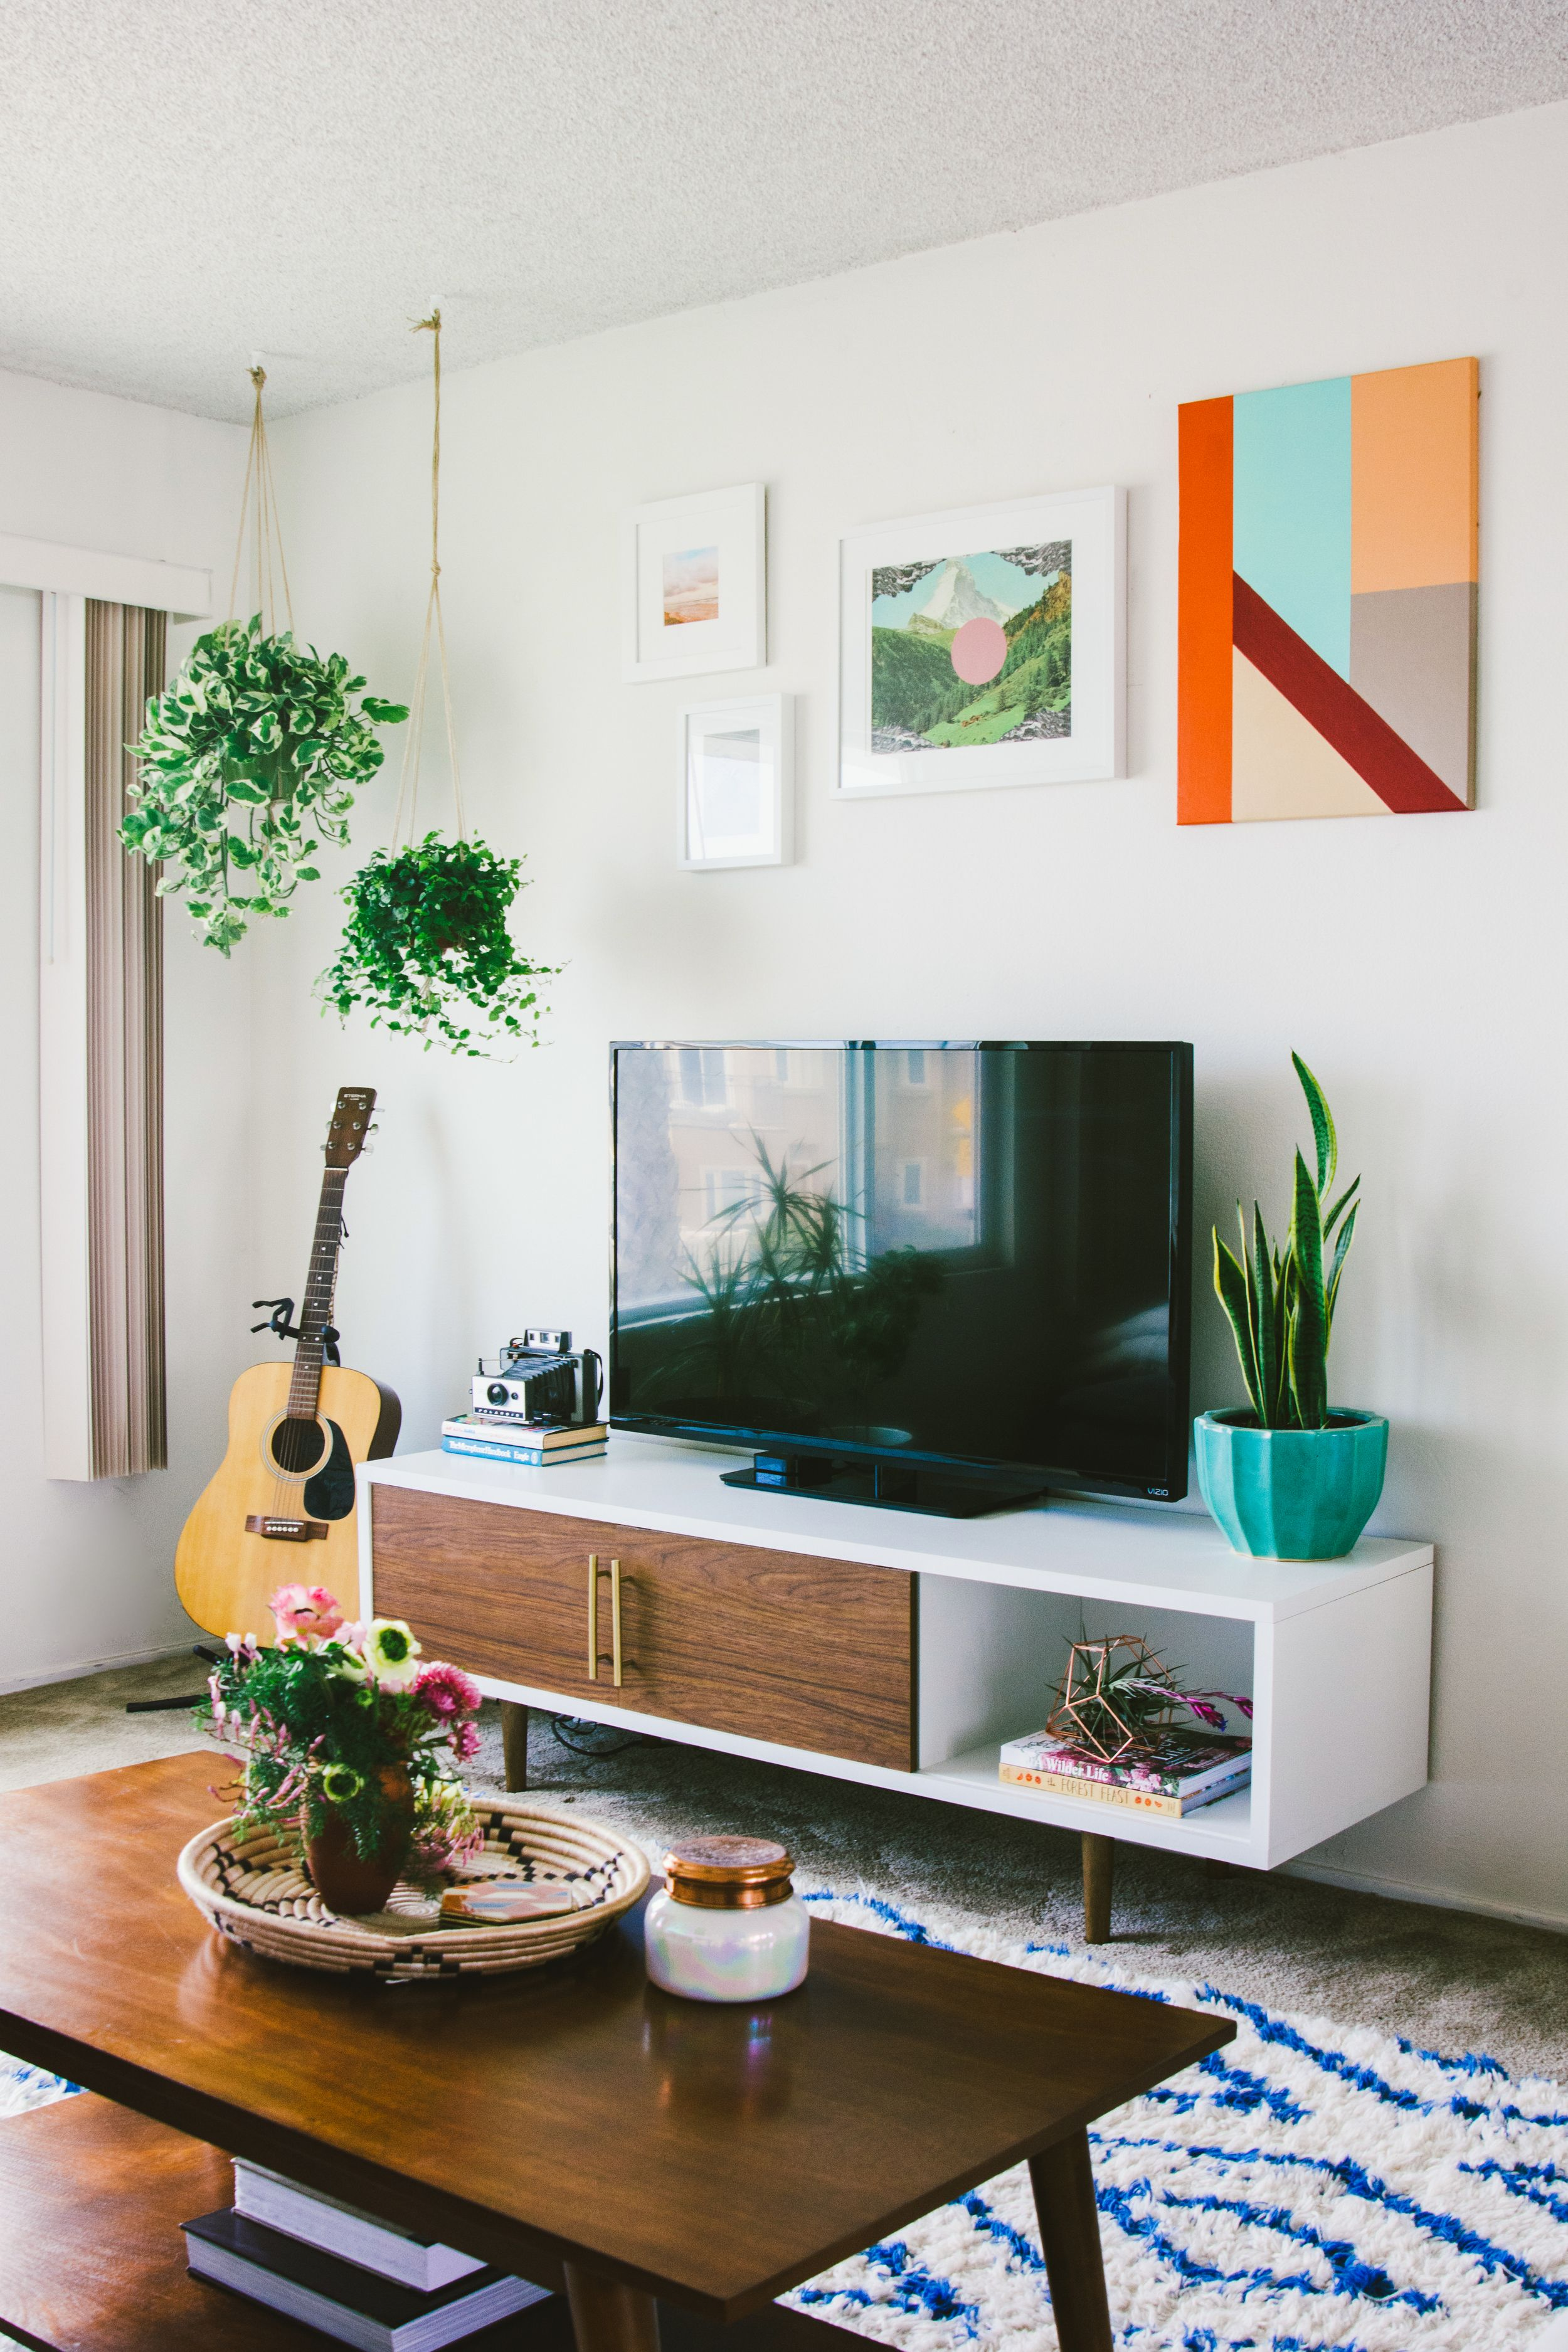 Apr 7 Tour Our Home on Design*Sponge | Apartments, Living rooms and Room